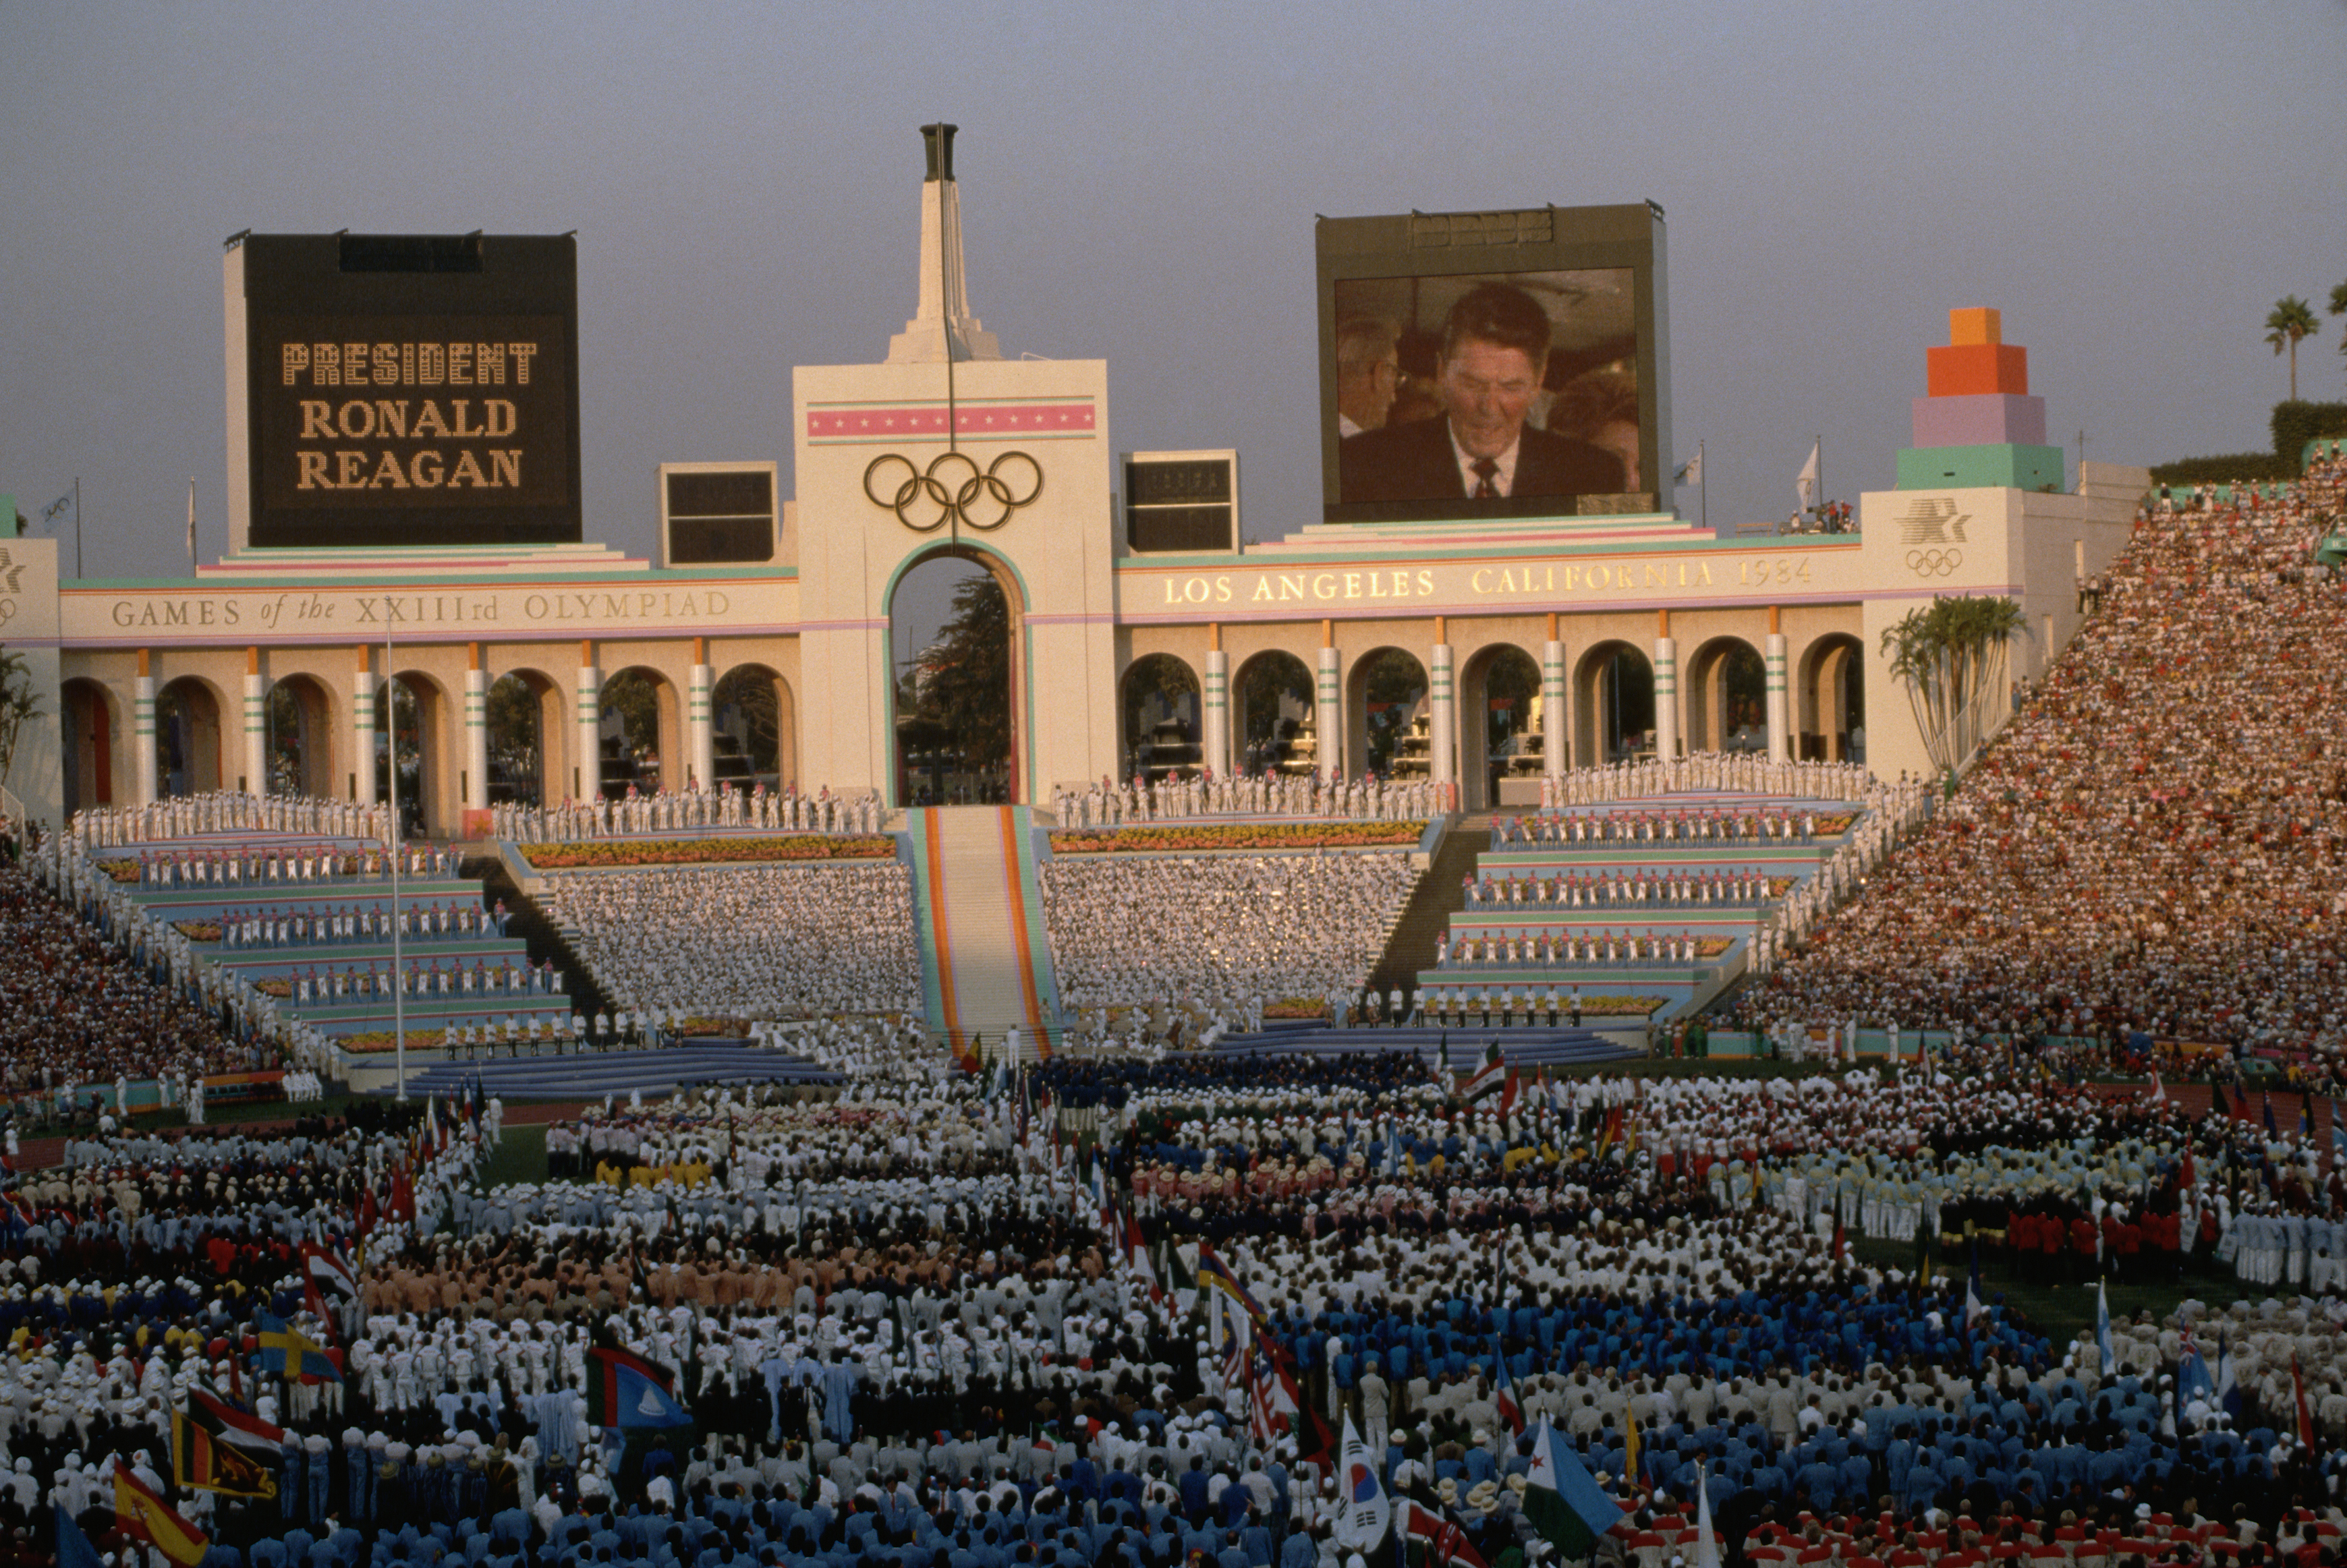 Ronald Reagan Speaks at Olympic Opening Ceremony